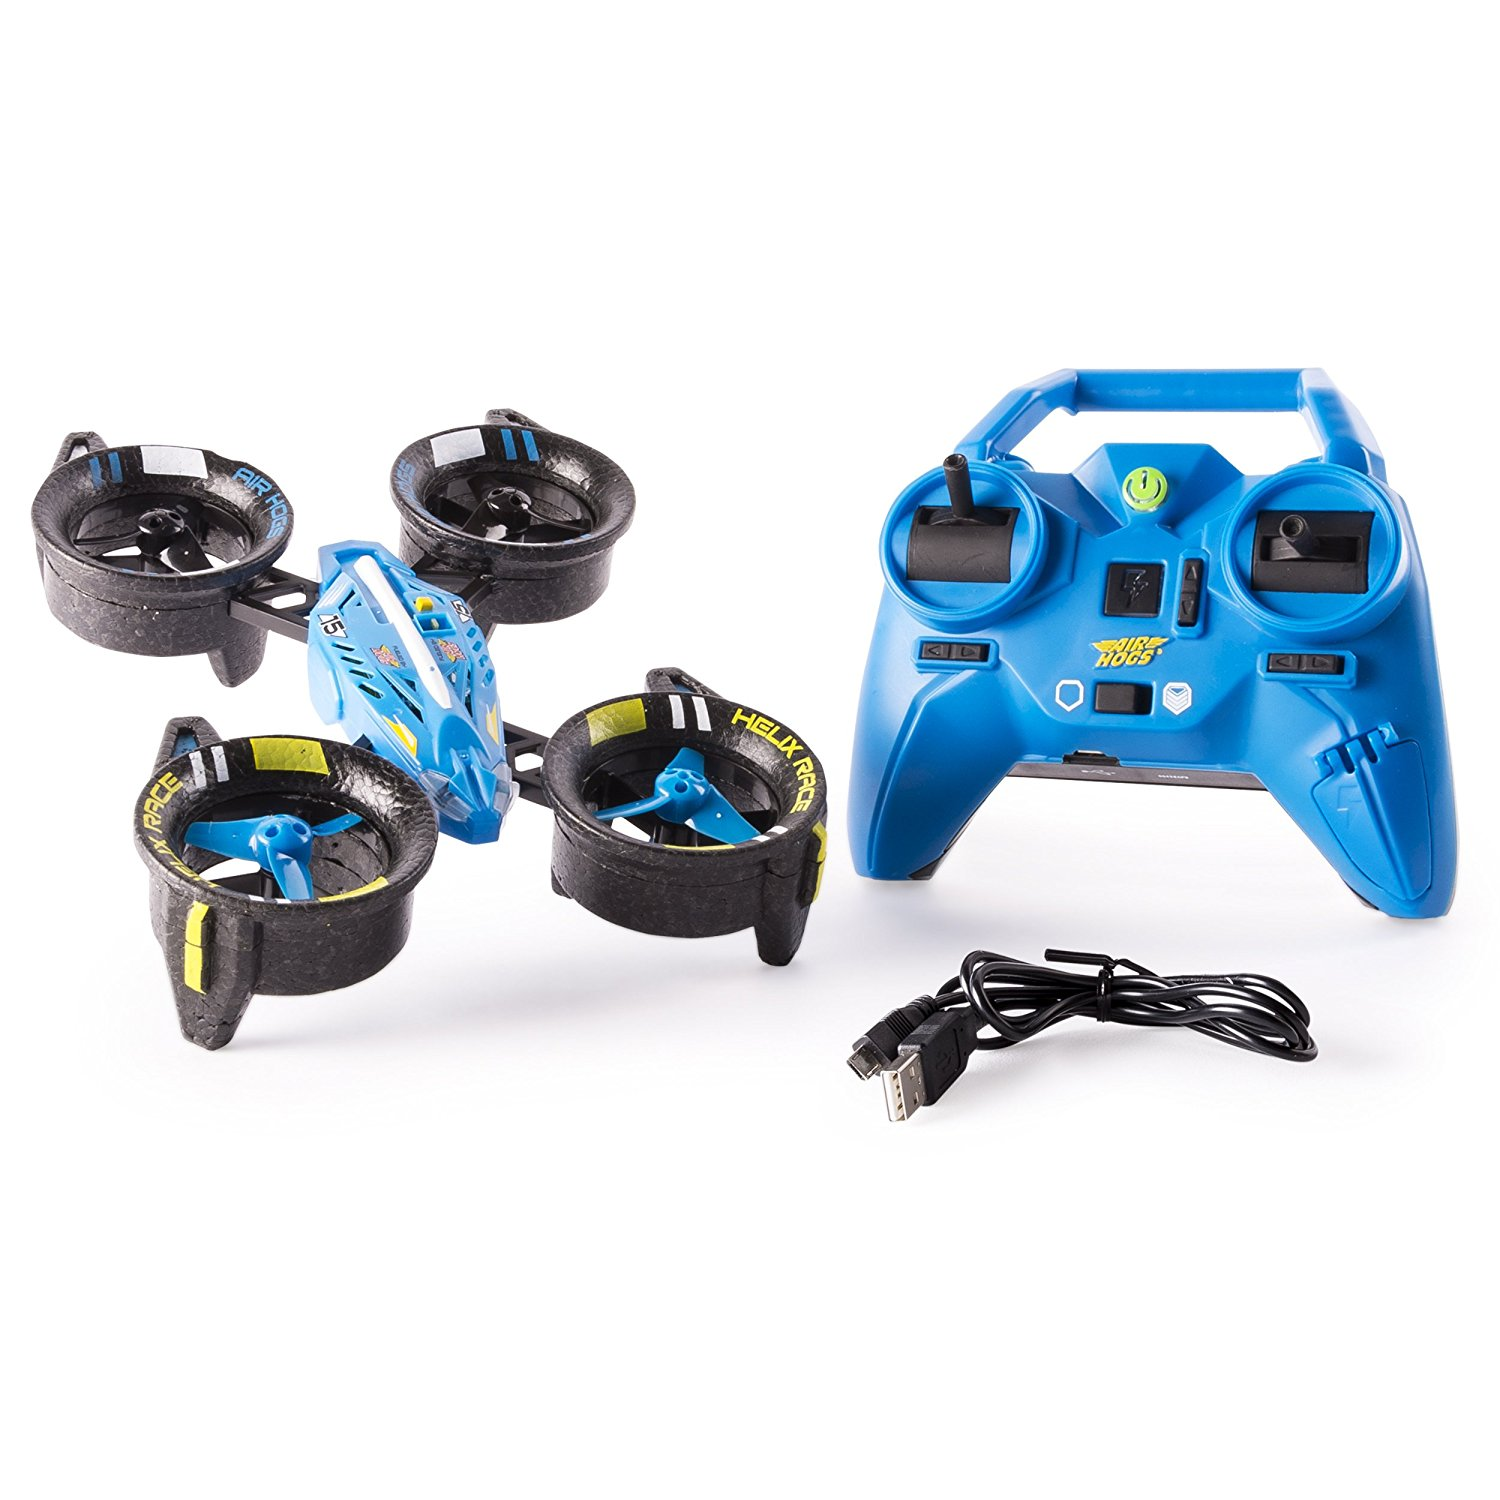 , Helix Race Drone, 2.4 GHZ, Blue RC Vehicle, This refurbished product is tested and... by